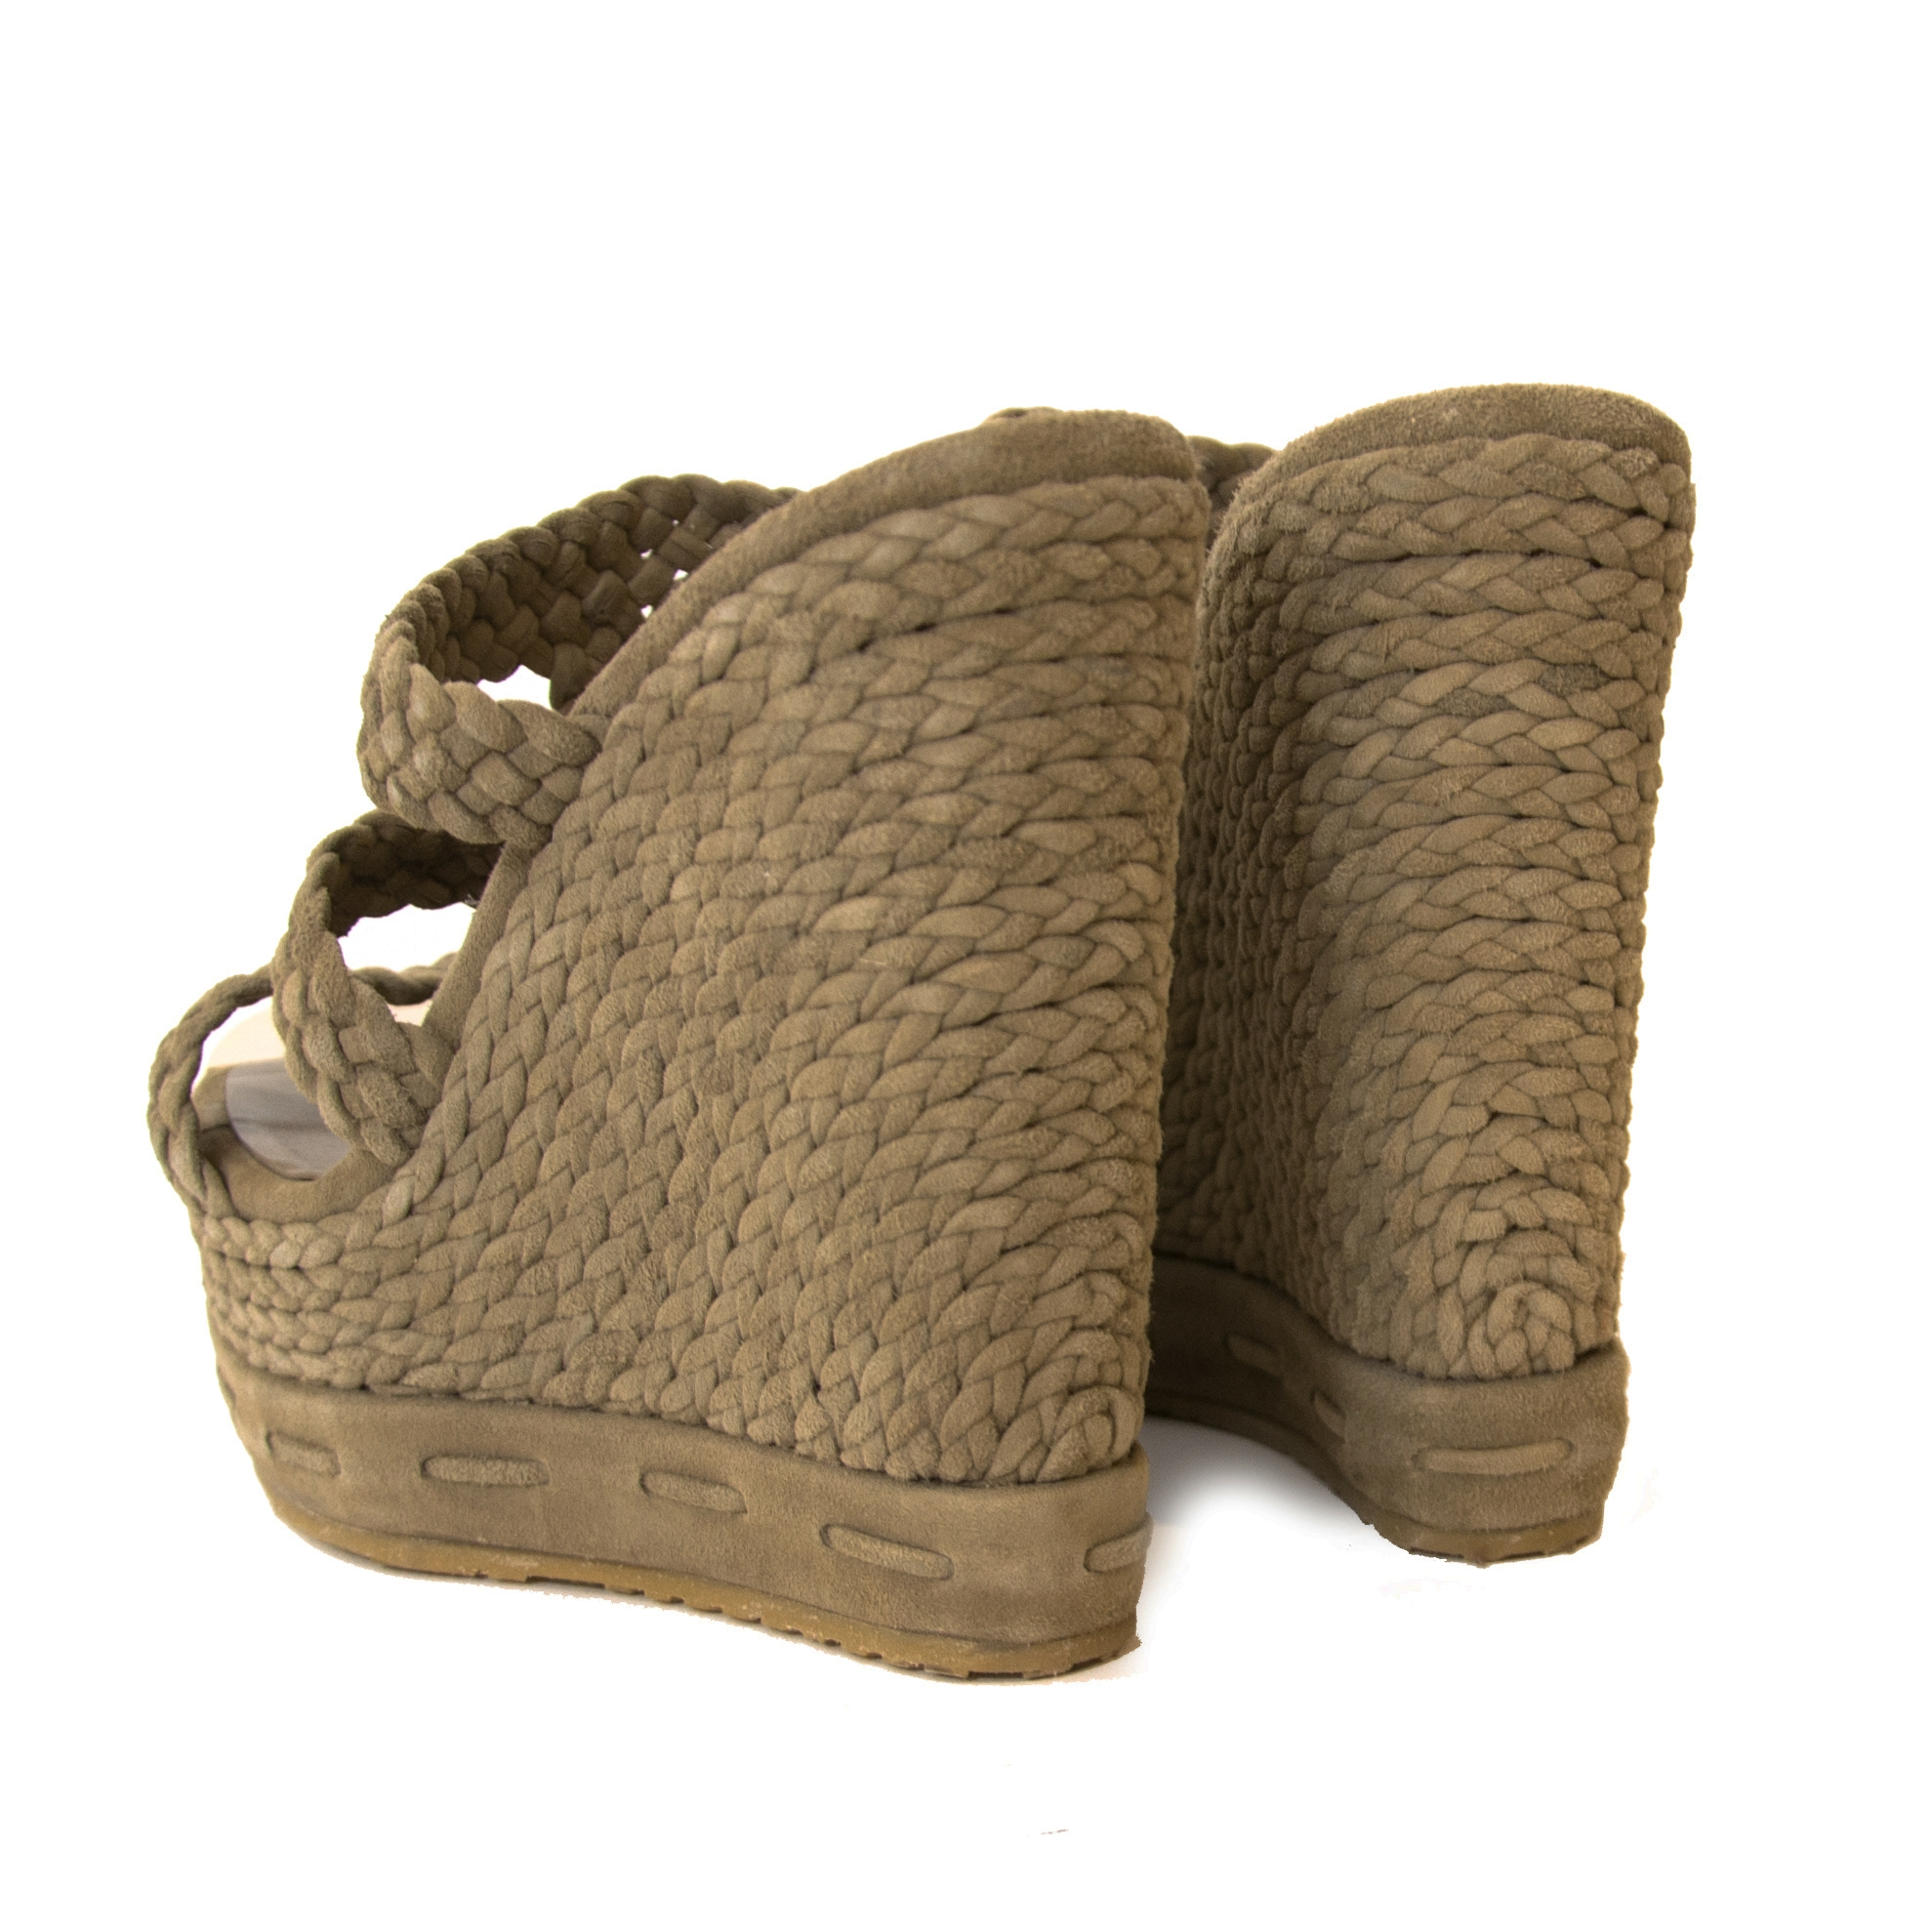 Jimmy Choo Olive Pace Woven Suede Wedges - Size 36 for the best price available at Labellov secondhand